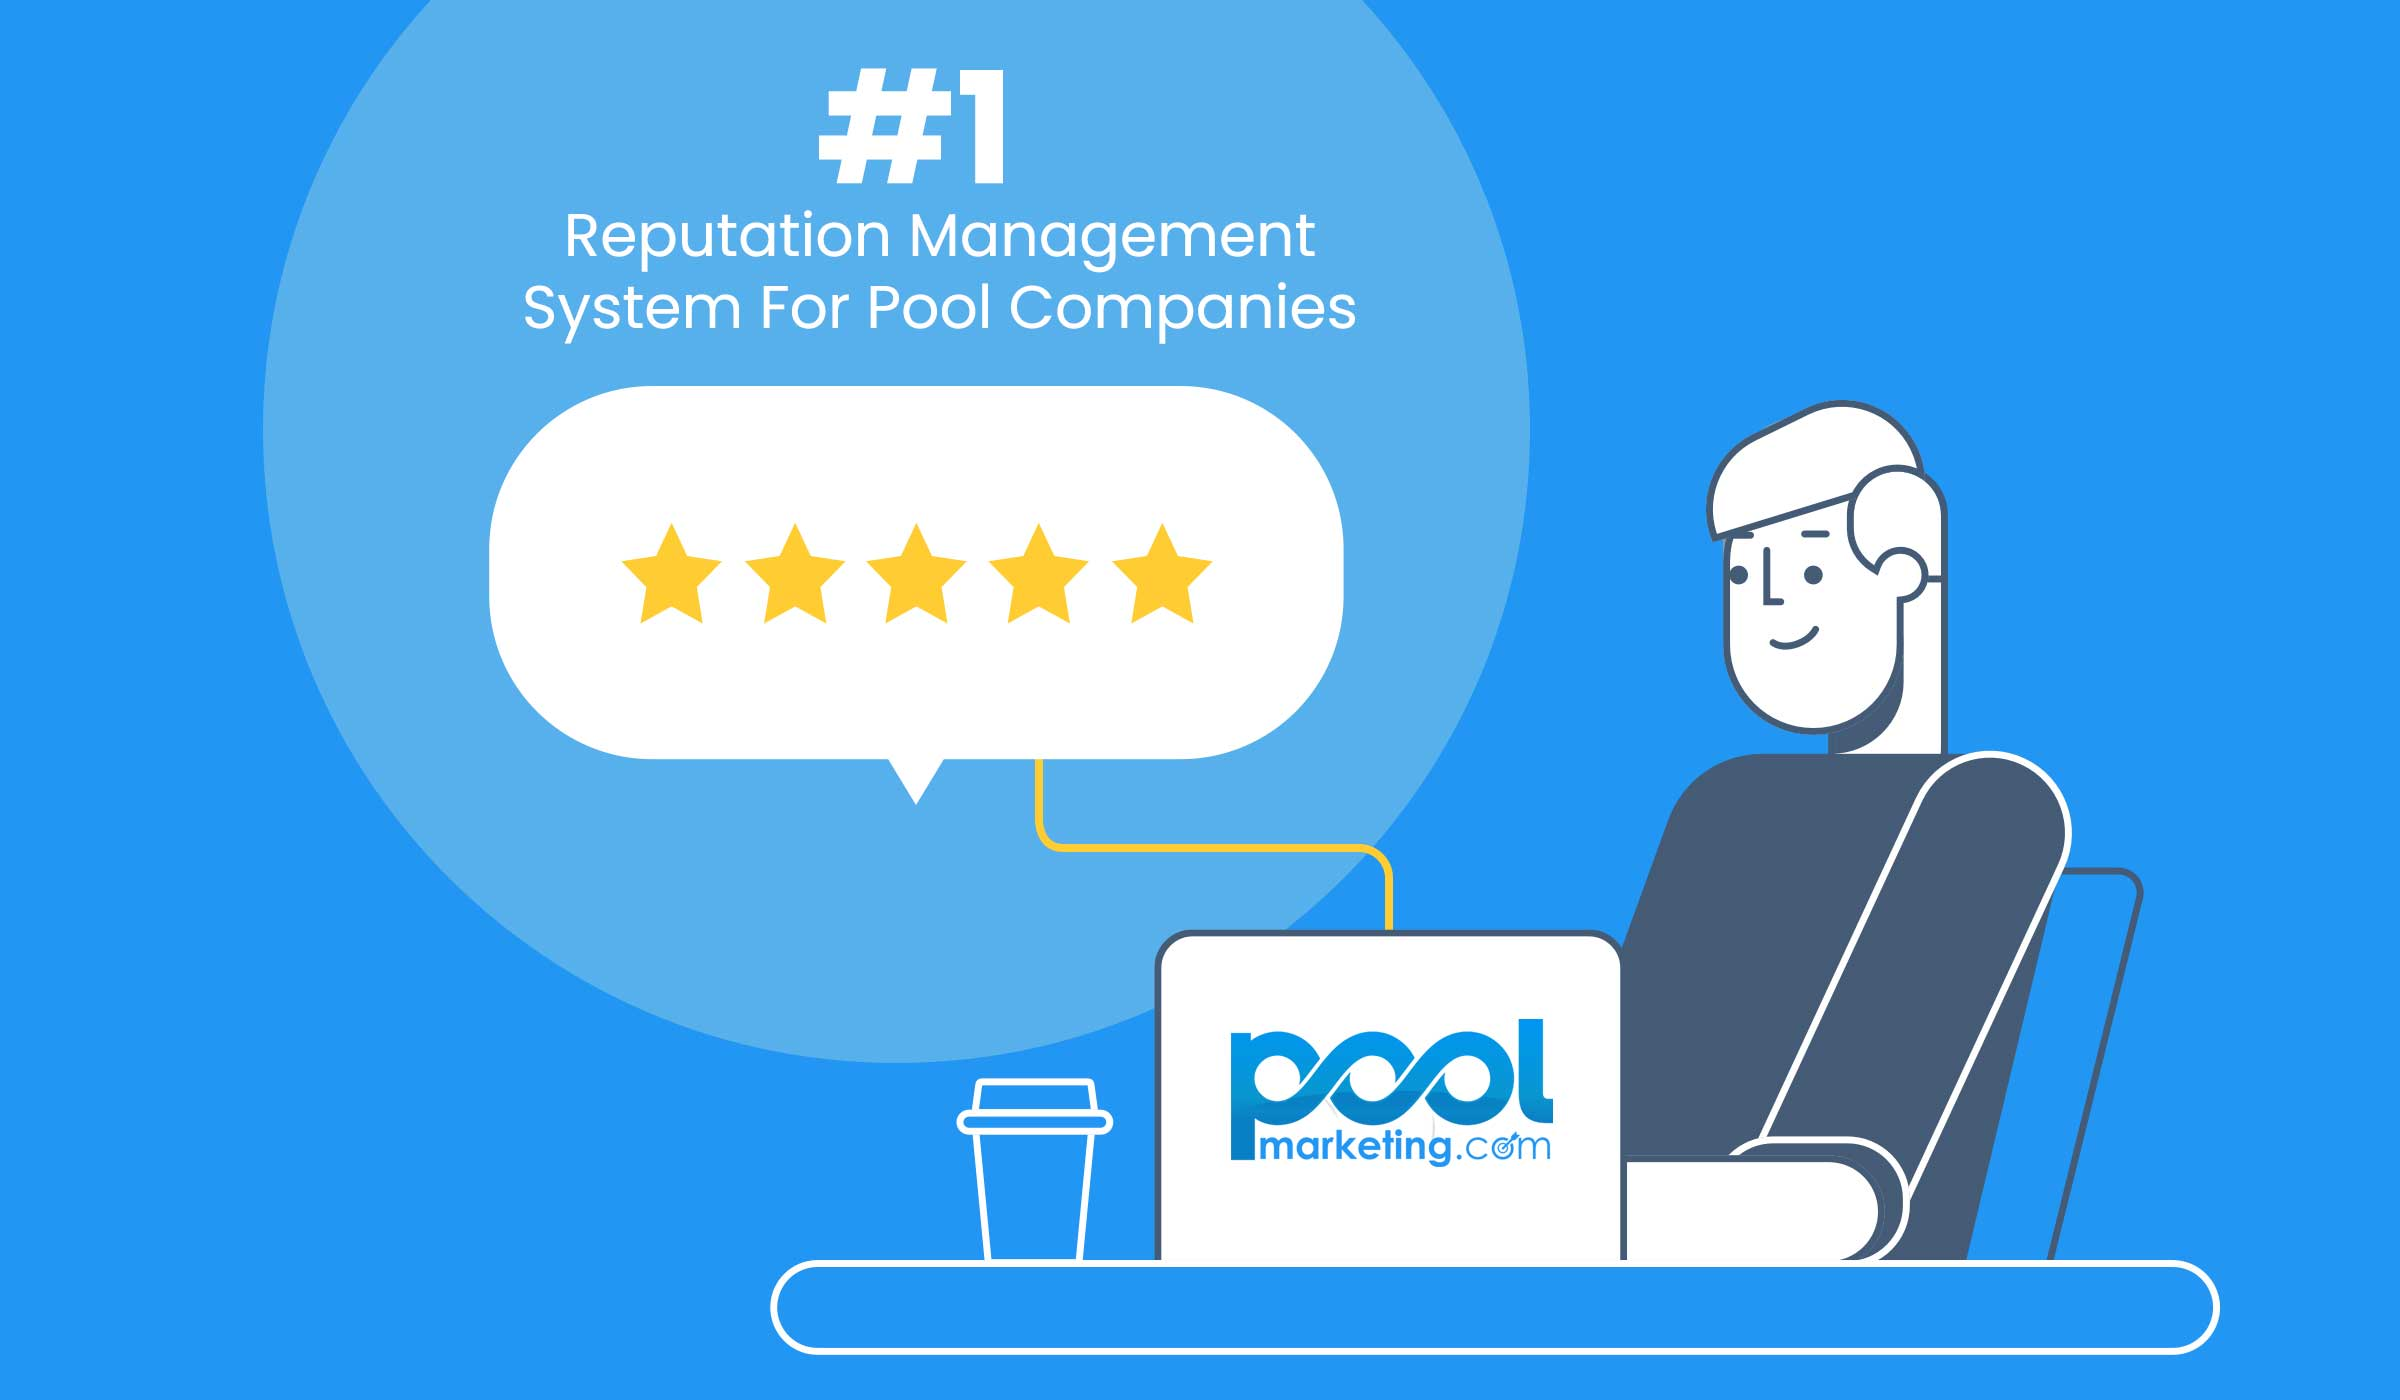 PoolMarketing.com is the #1 Reputation Management System for Pool Builders & Pool Service Companies